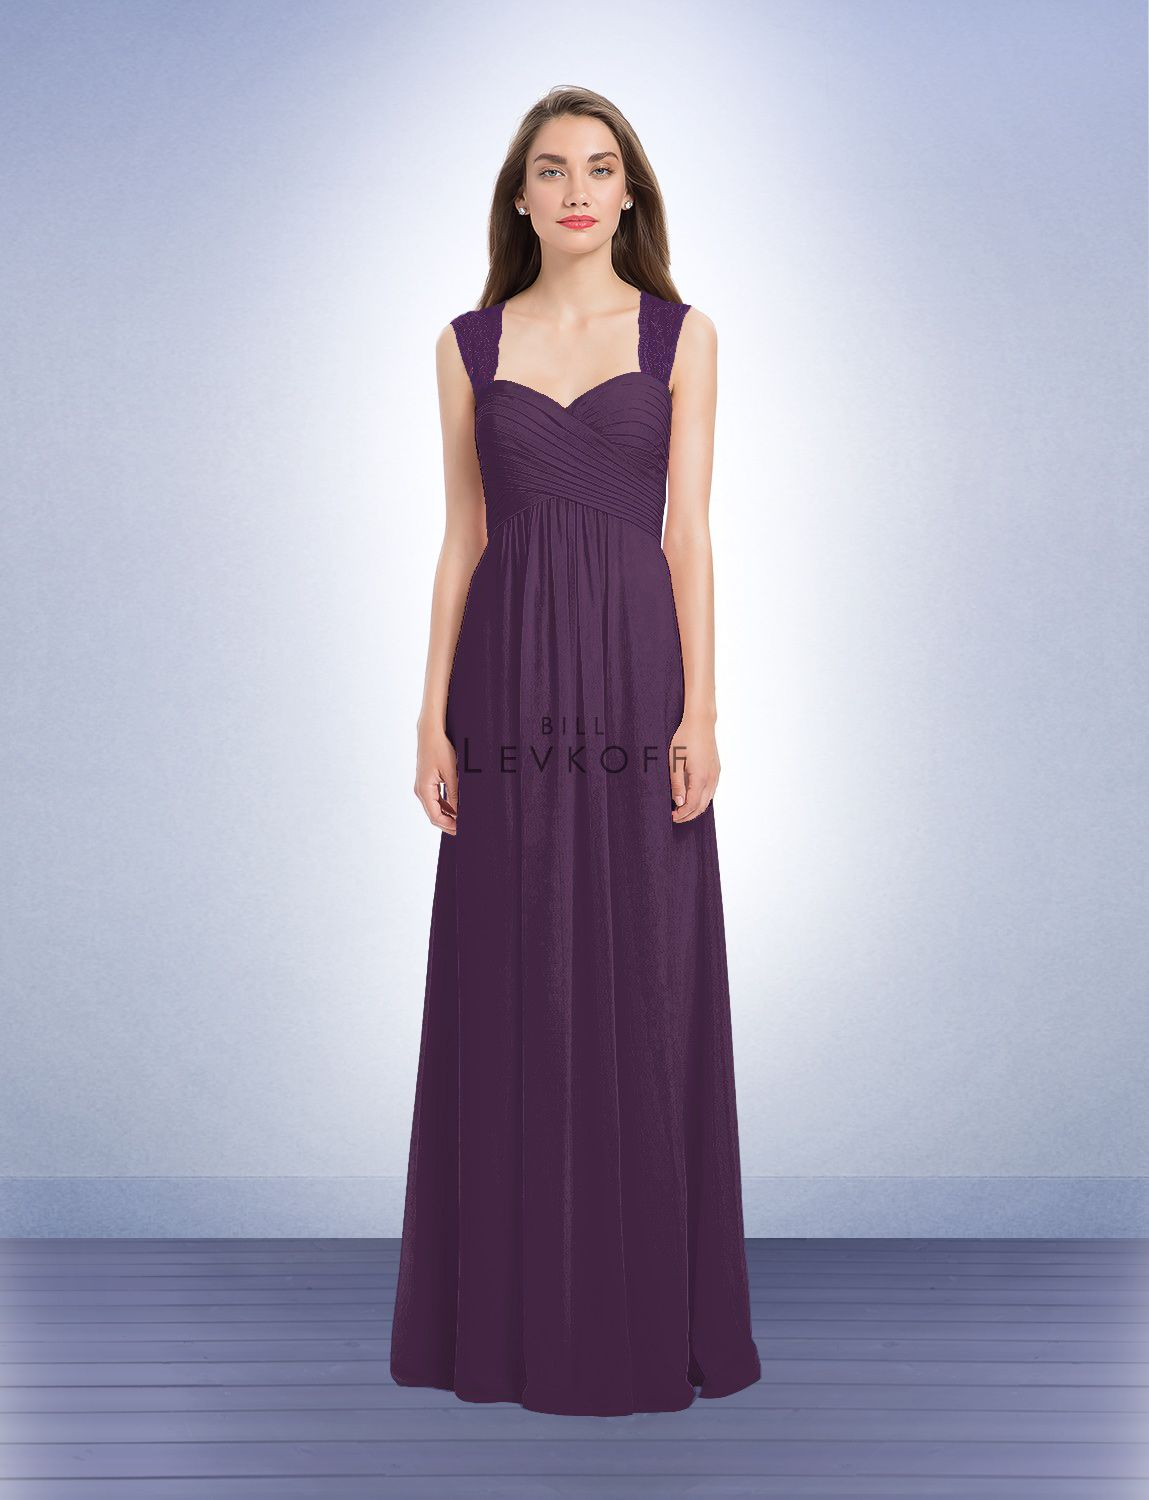 Bridesmaid Dress Style 1173 Dresses By Bill Levkoff